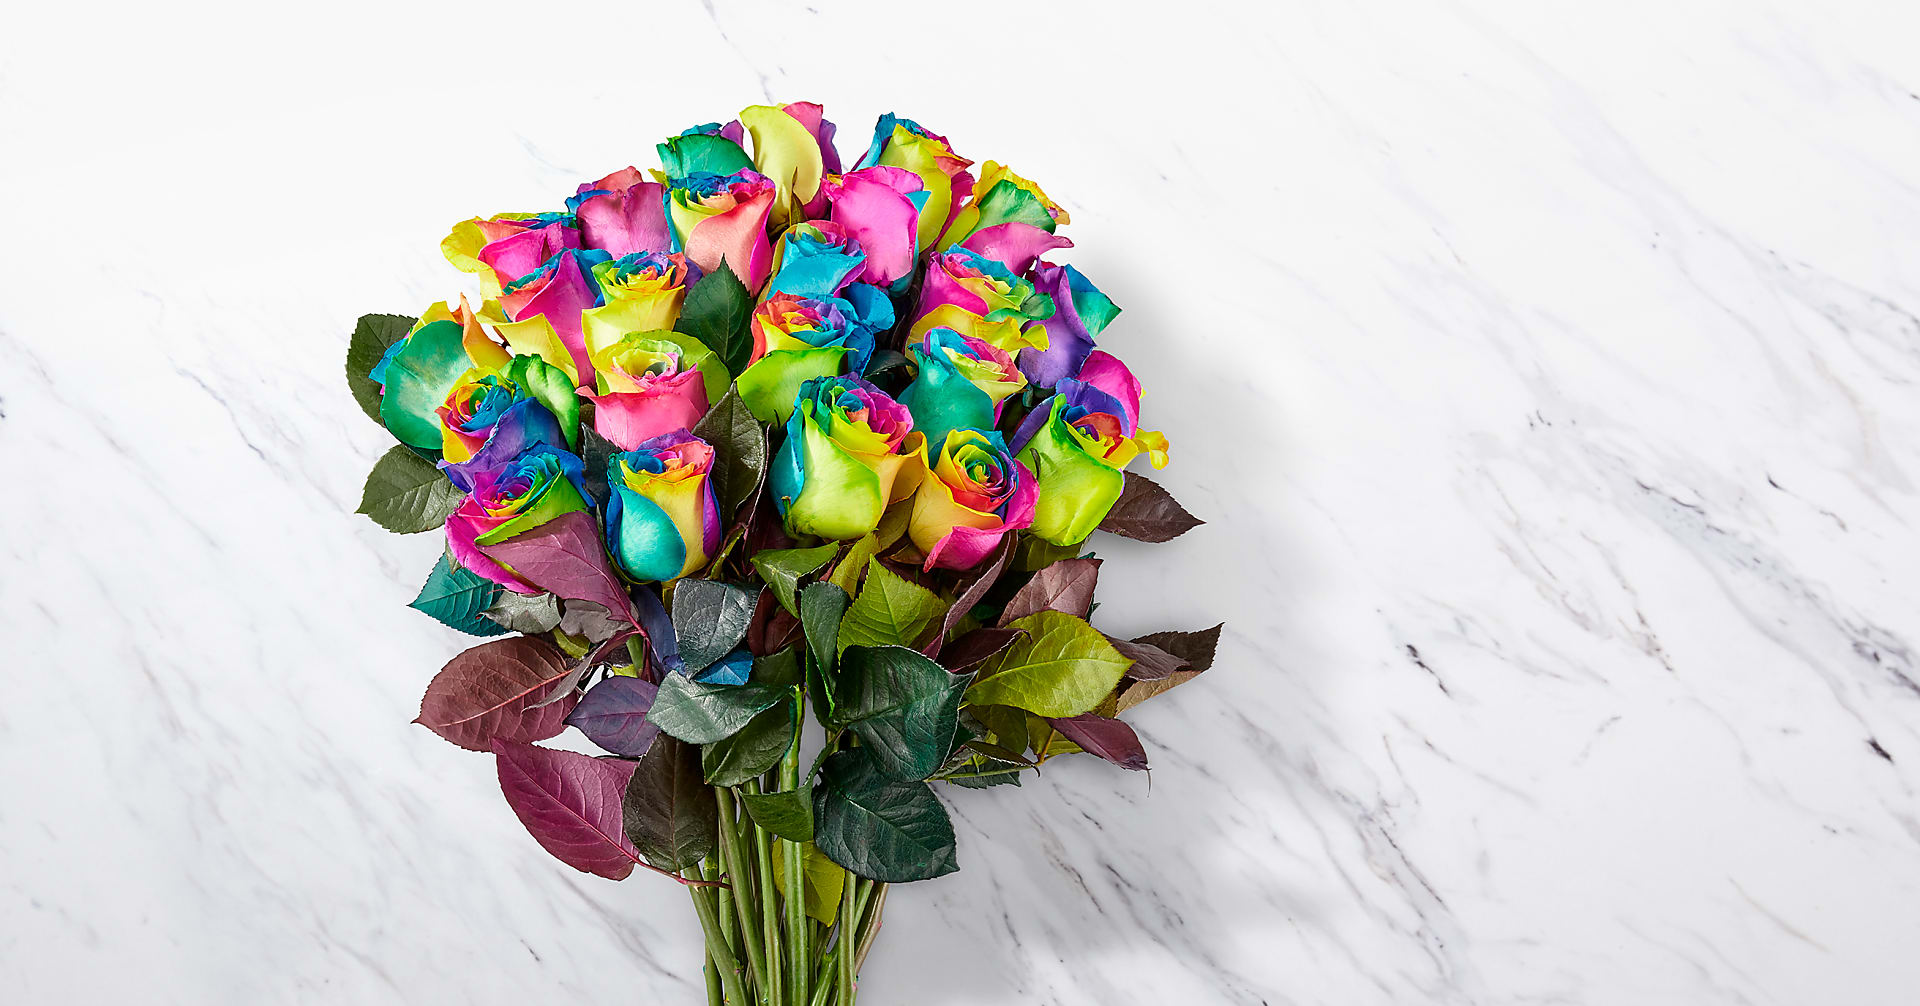 Time to Celebrate Rainbow Rose Bouquet - 24 Stems with Vase - Image 2 Of 4